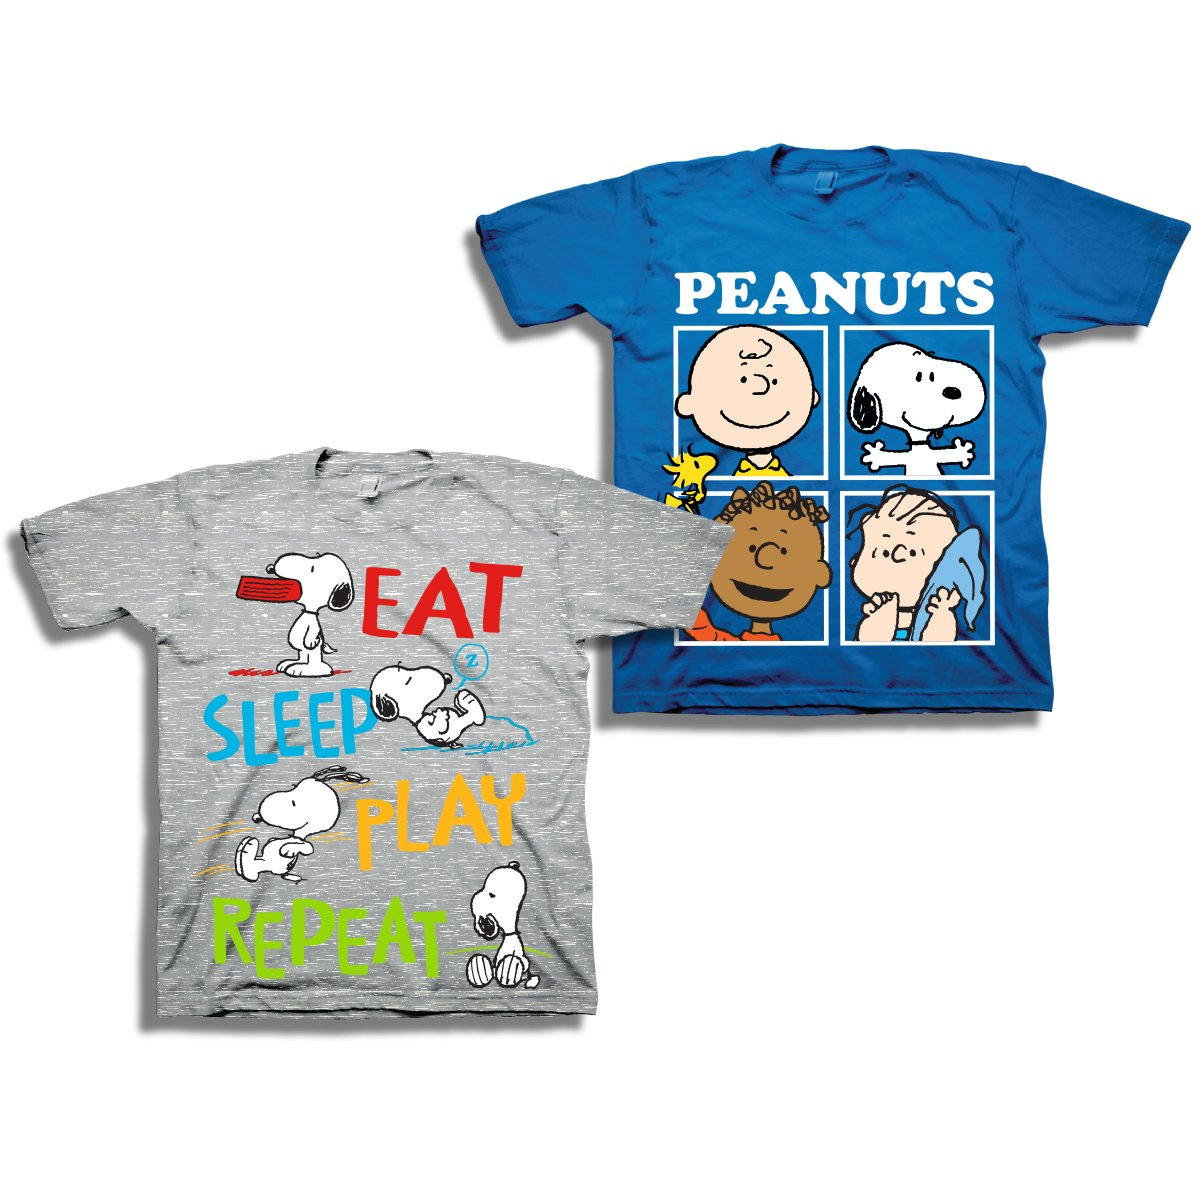 Peanuts Toddler Boys Snoopy Shirt - 2 Pack of Classic Tees - Snoopy, Linus, Woodstock, and Charlie Brown (Grey/Royal, 2T)